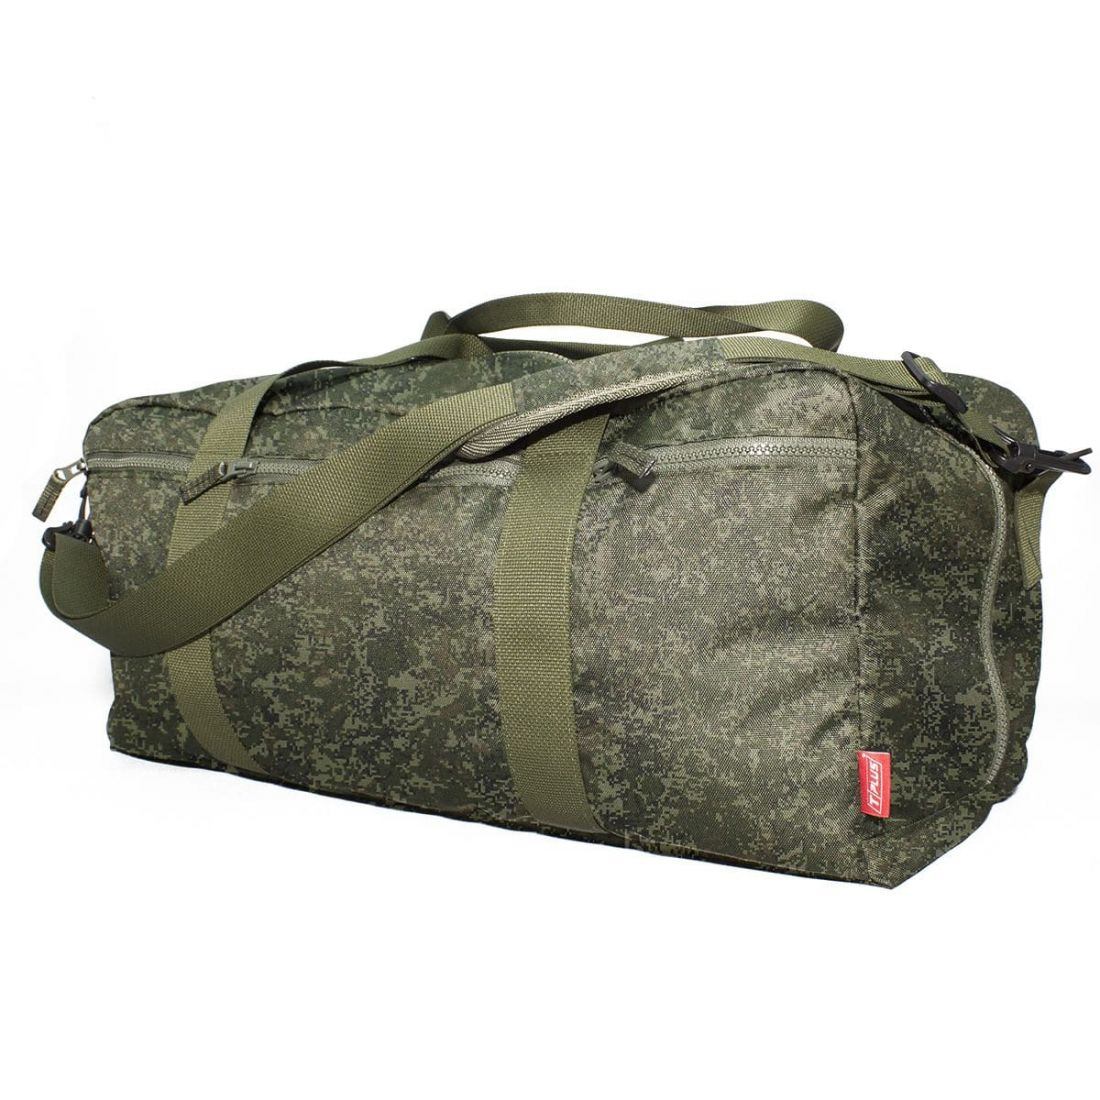 "Сумка ""Duffle Bag"" 530х270х270 мм (оксфорд 600, цифра), Tplus"